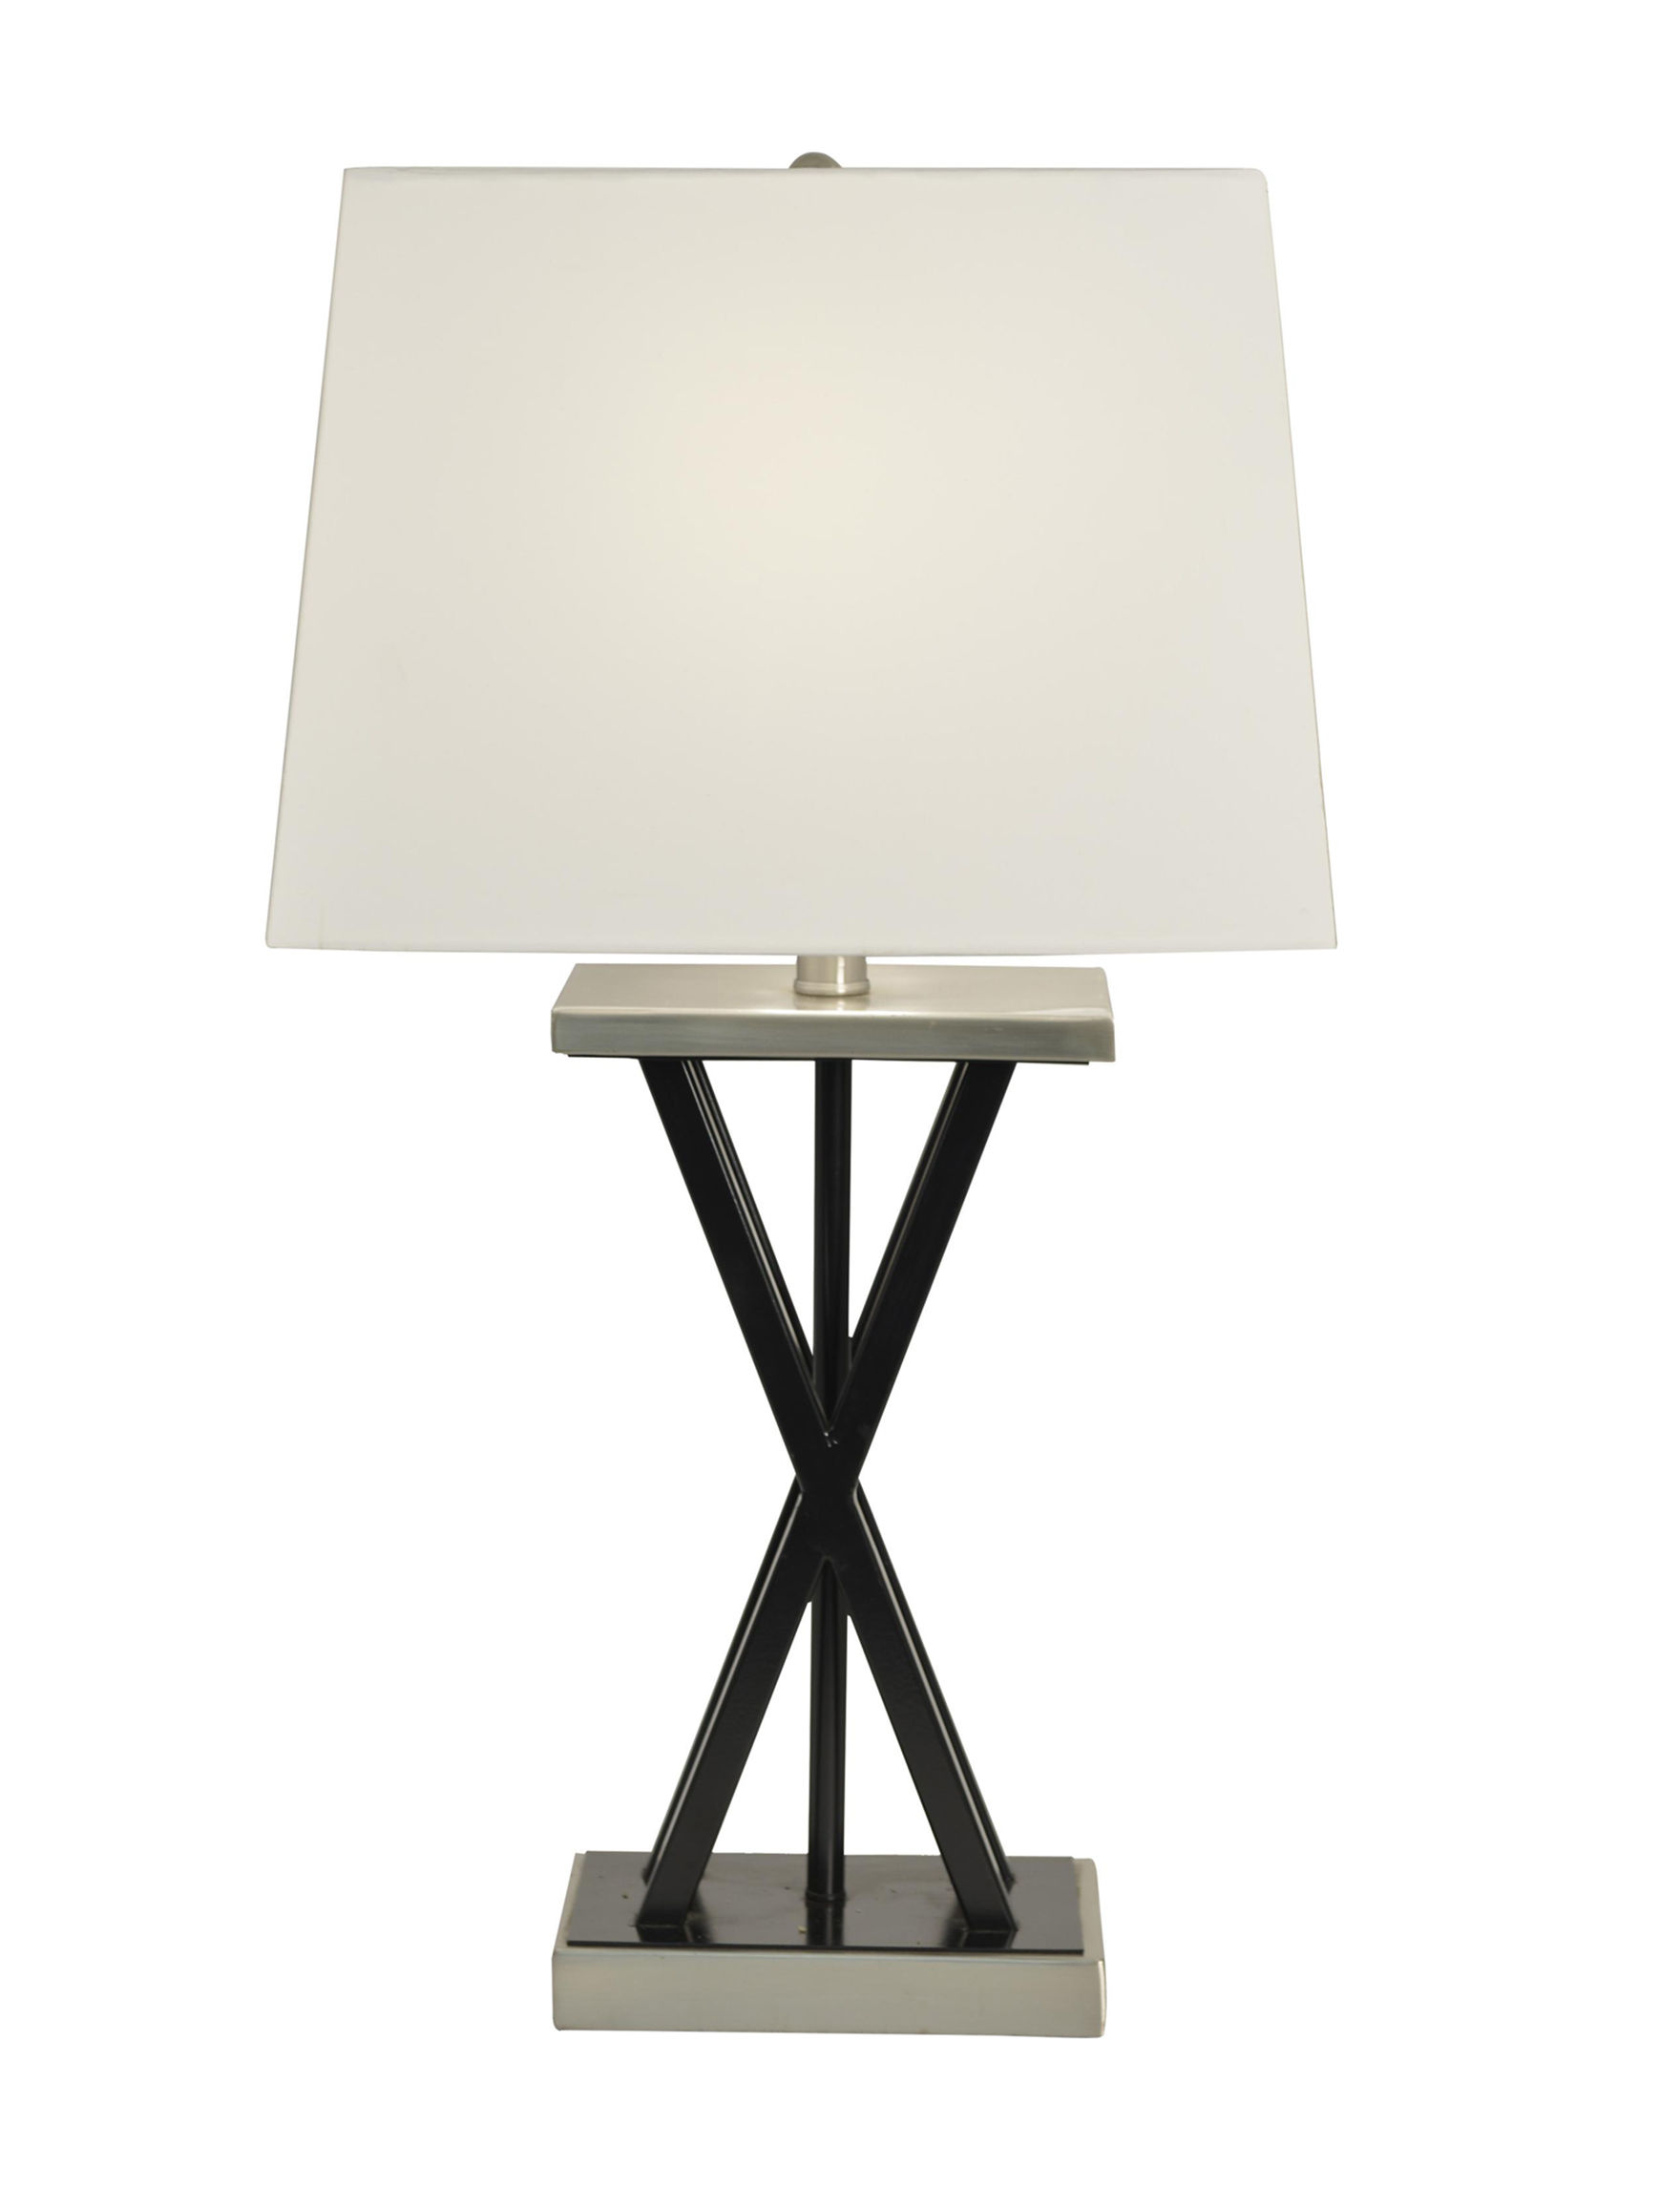 Decor Therapy Black Table Lamps Lighting & Lamps